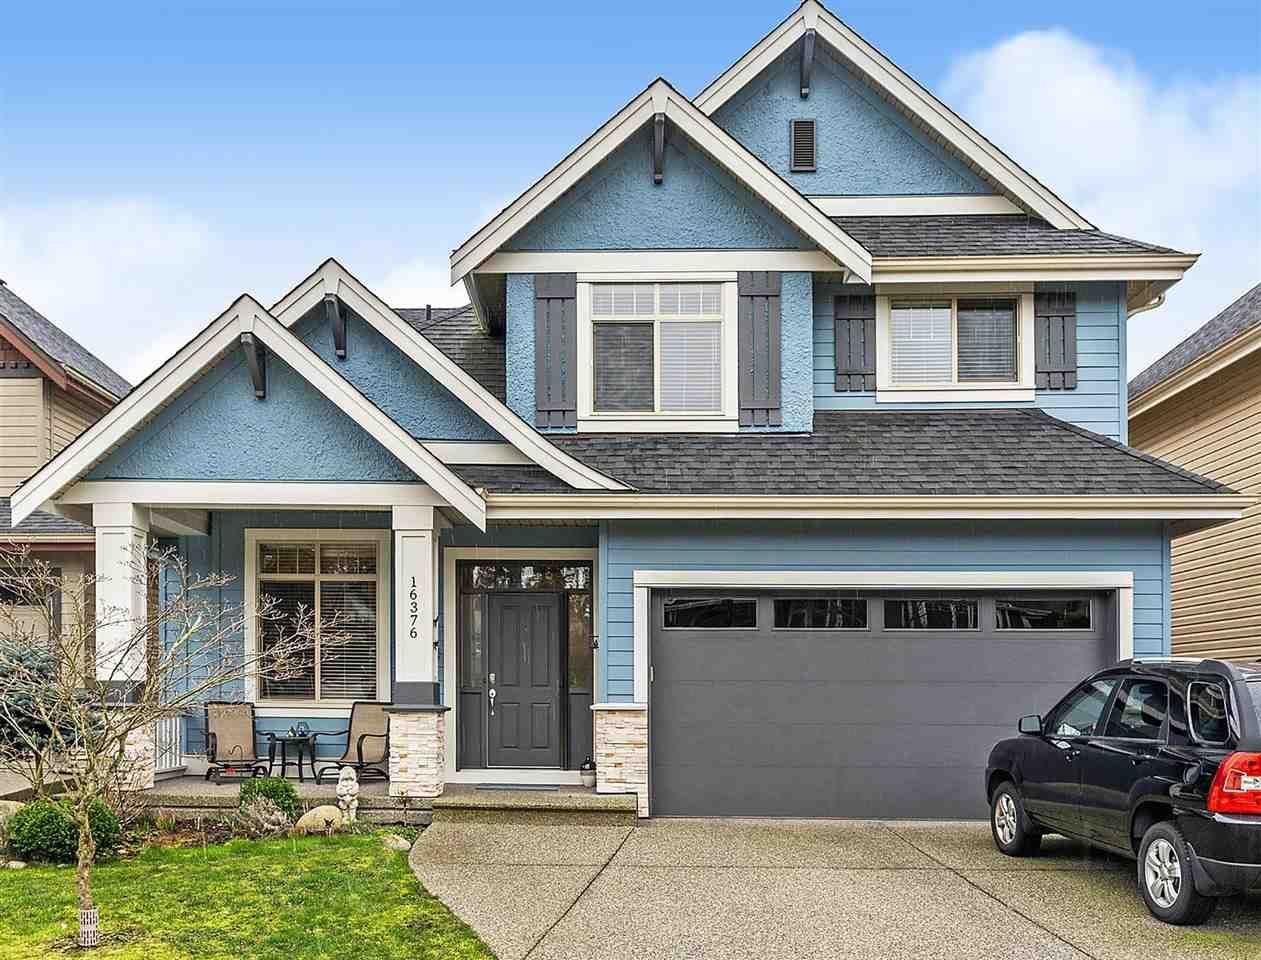 Main Photo: 16376 59A Avenue in Surrey: Cloverdale BC House for sale (Cloverdale)  : MLS®# R2541034